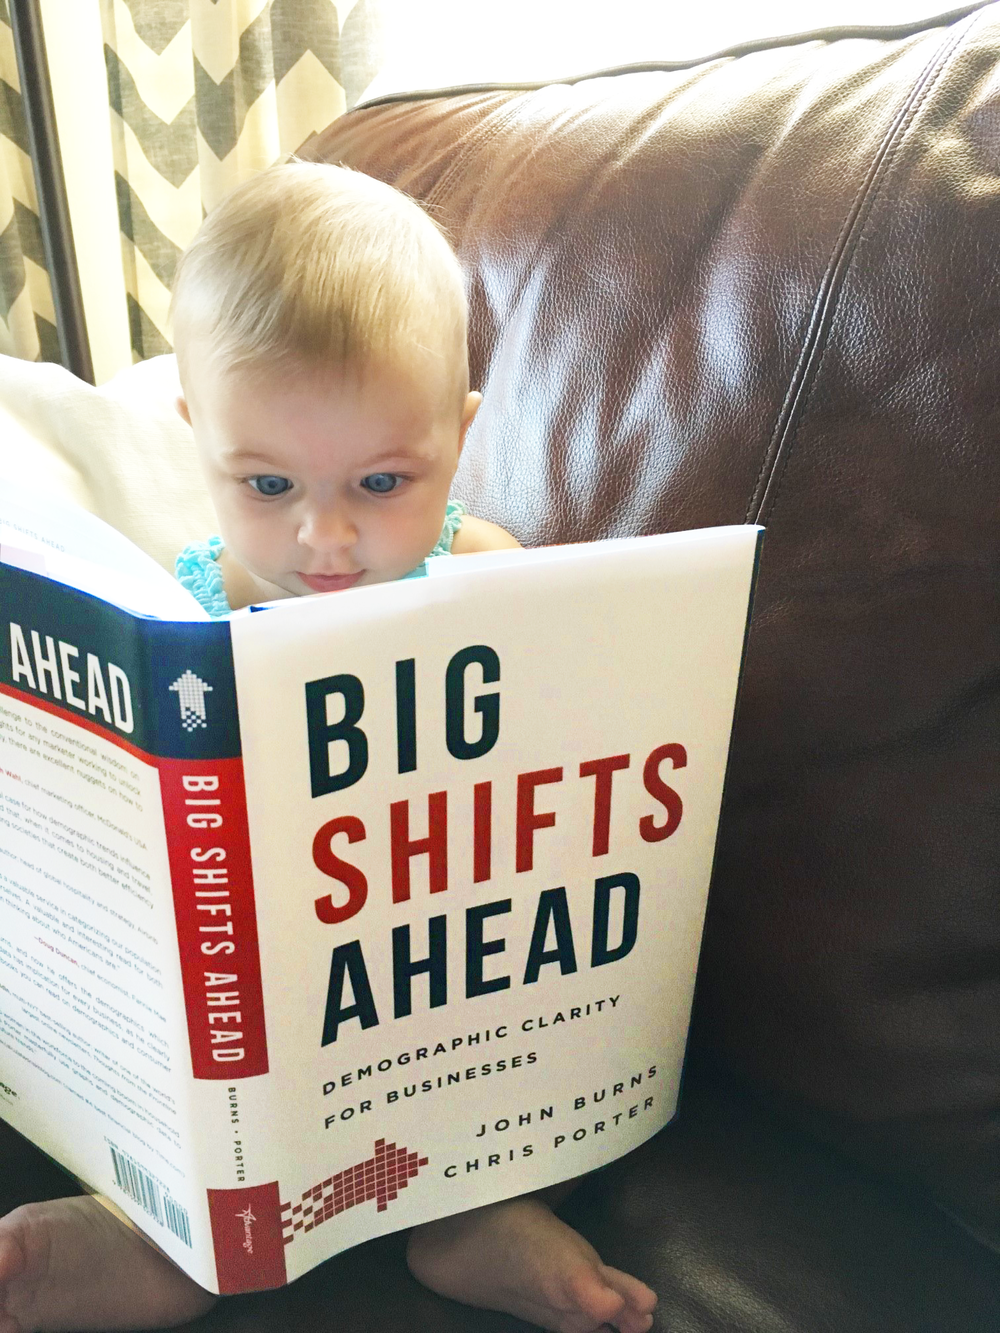 Our youngest reader,  Finley Porter , supporting her dad (co-author Chris Porter), on launch day.